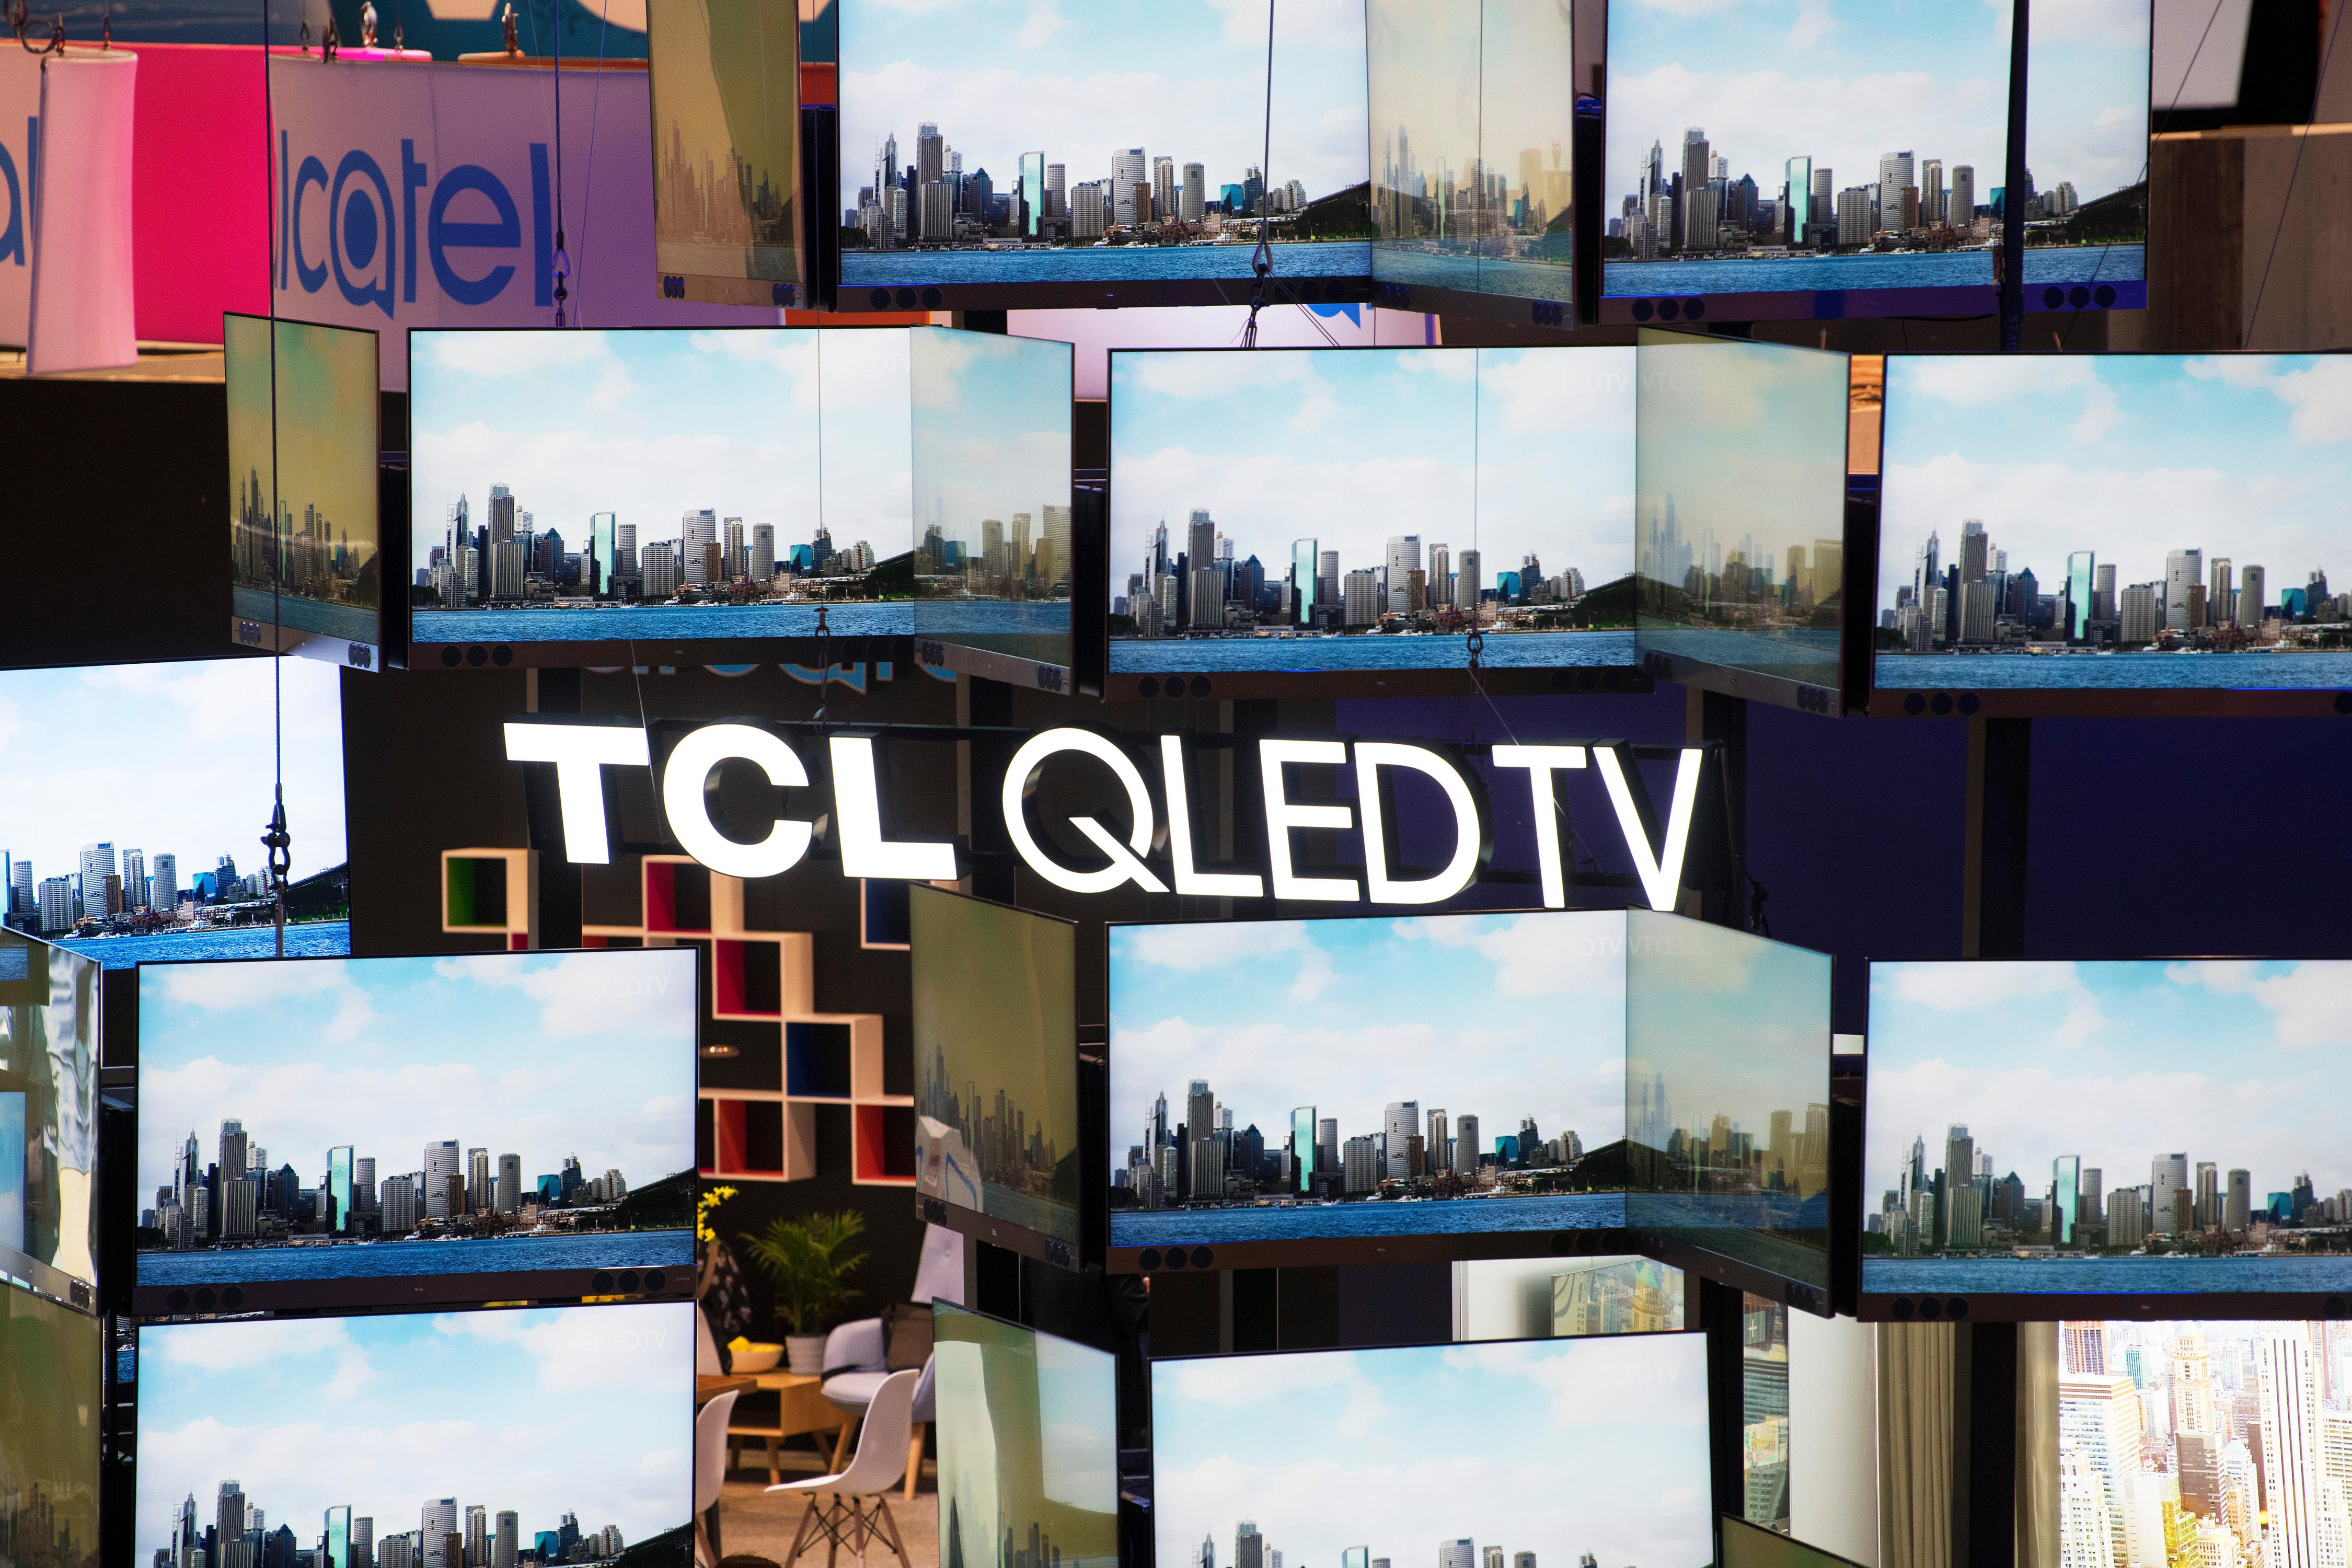 A wall of televisions from TCL is seen during the second day of CES Wednesday, January 10, 2018, at the Las Vegas Convention Center. CREDIT: Sam Morris/Las Vegas News Bureau